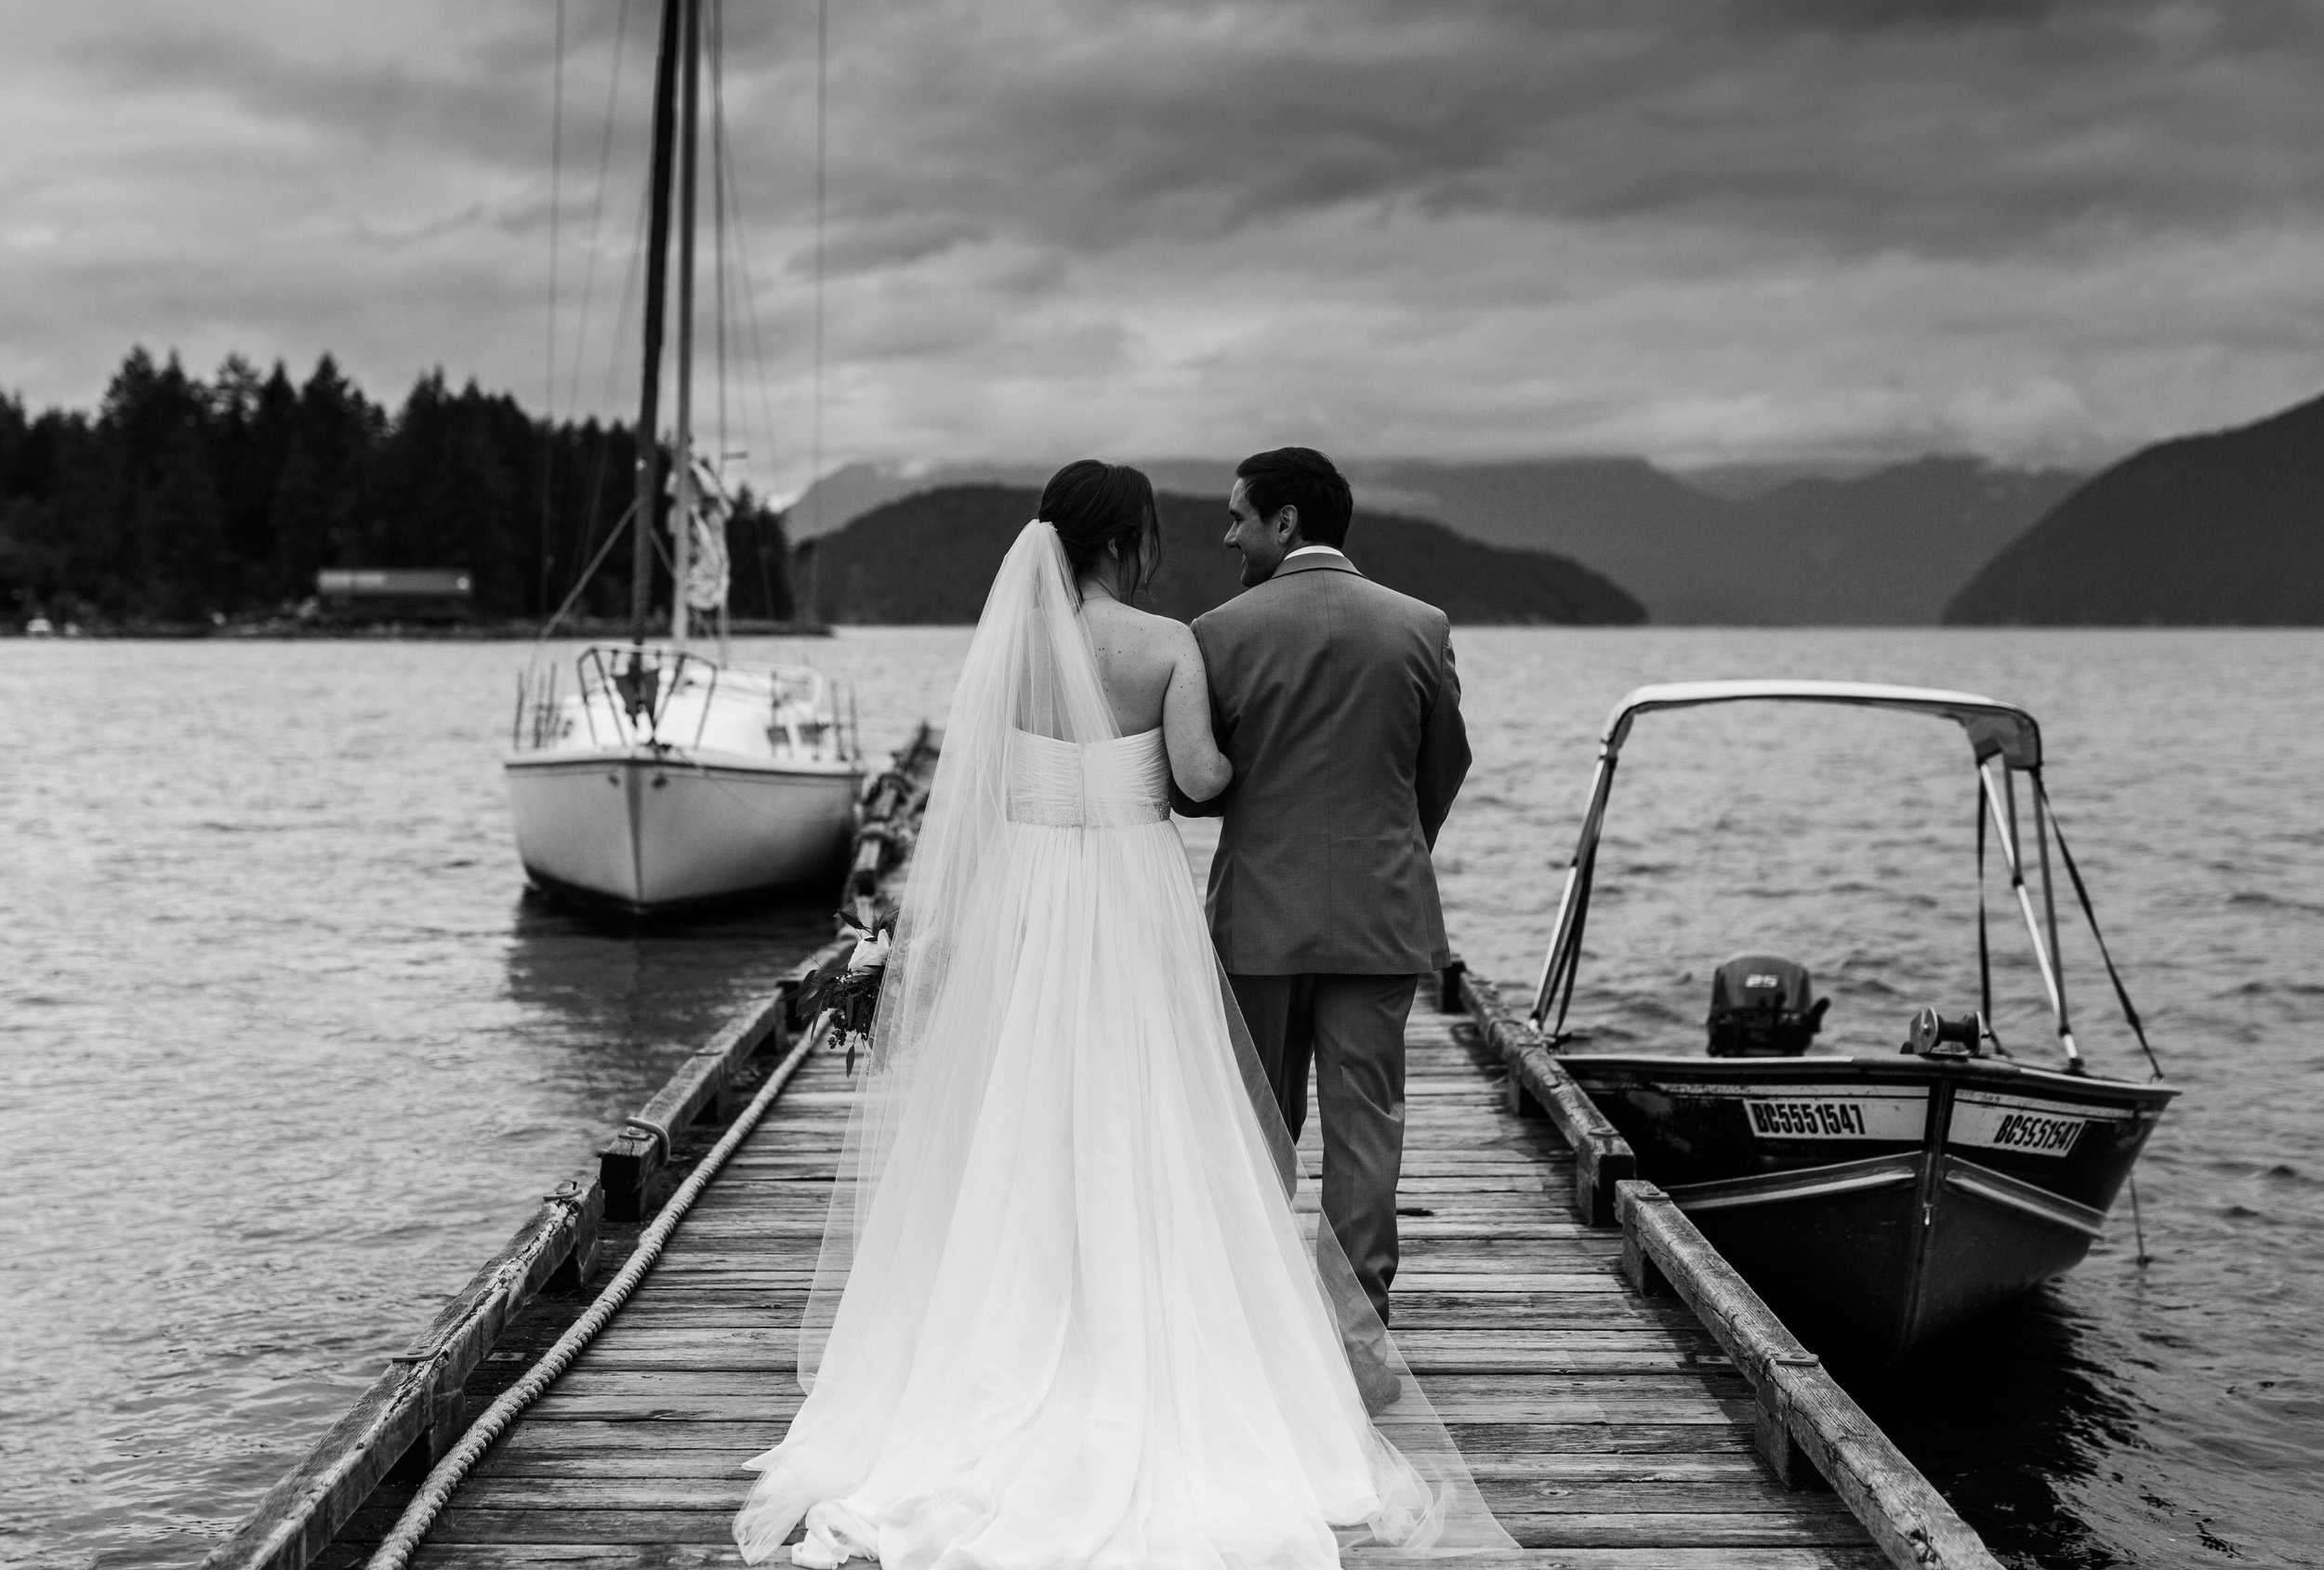 West Coast Wilderness Lodge Wedding Photos - Vancouver Wedding Photographer & Videographer - Sunshine Coast Wedding Photos - Sunshine Coast Wedding Photographer - Jennifer Picard Photography - IMG_6235-2.jpg